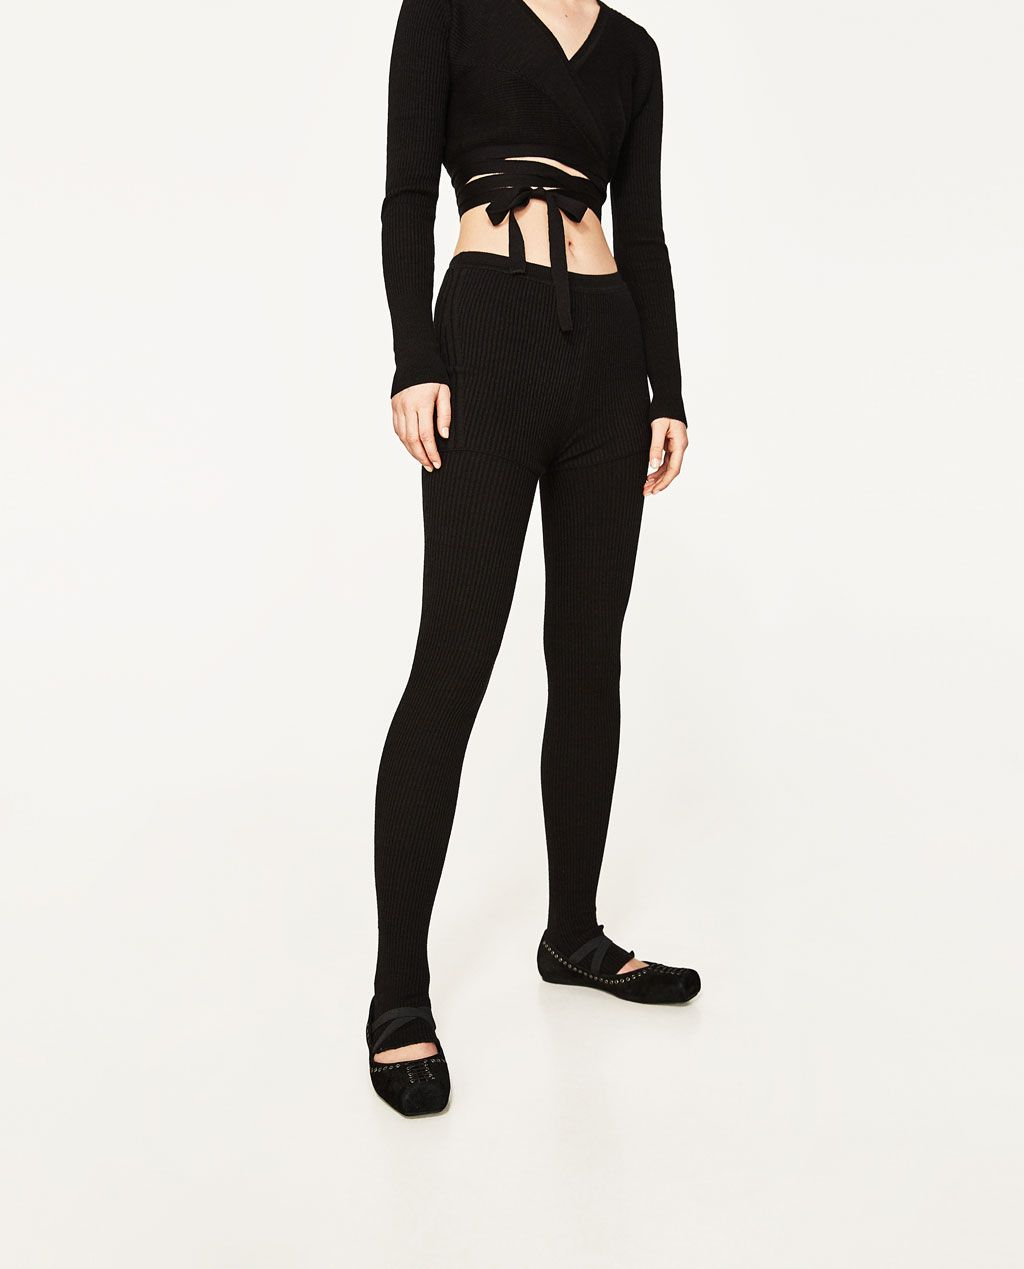 38518f06 Image 2 of LEGGINGS WITH BALLERINA FOOT STRAPS from Zara | knits ...